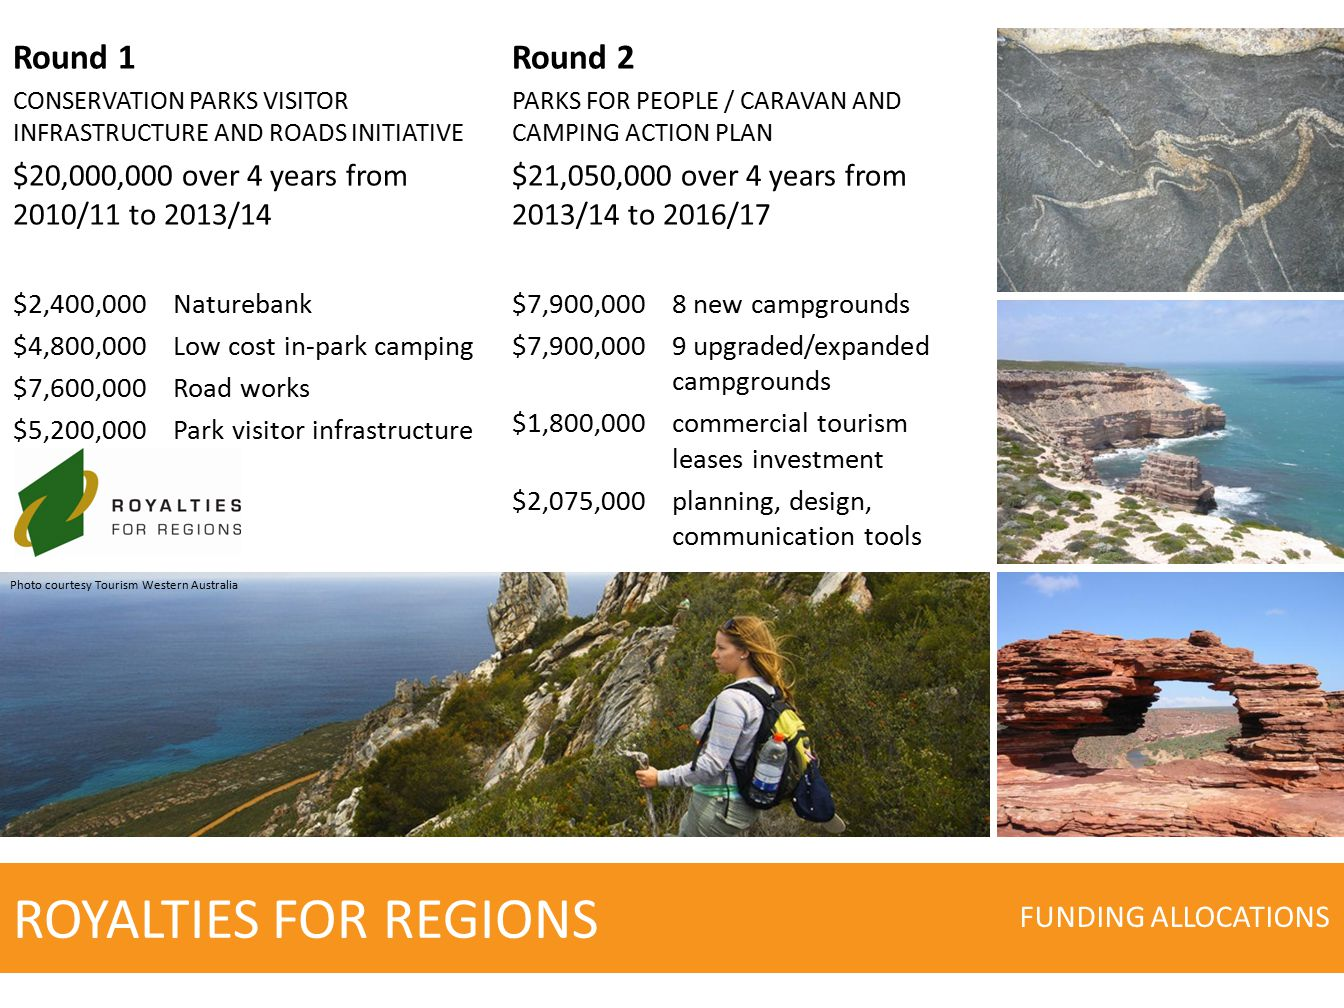 Round 1 CONSERVATION PARKS VISITOR INFRASTRUCTURE AND ROADS INITIATIVE $20,000,000 over 4 years from 2010/11 to 2013/14 $2,400,000Naturebank $4,800,00